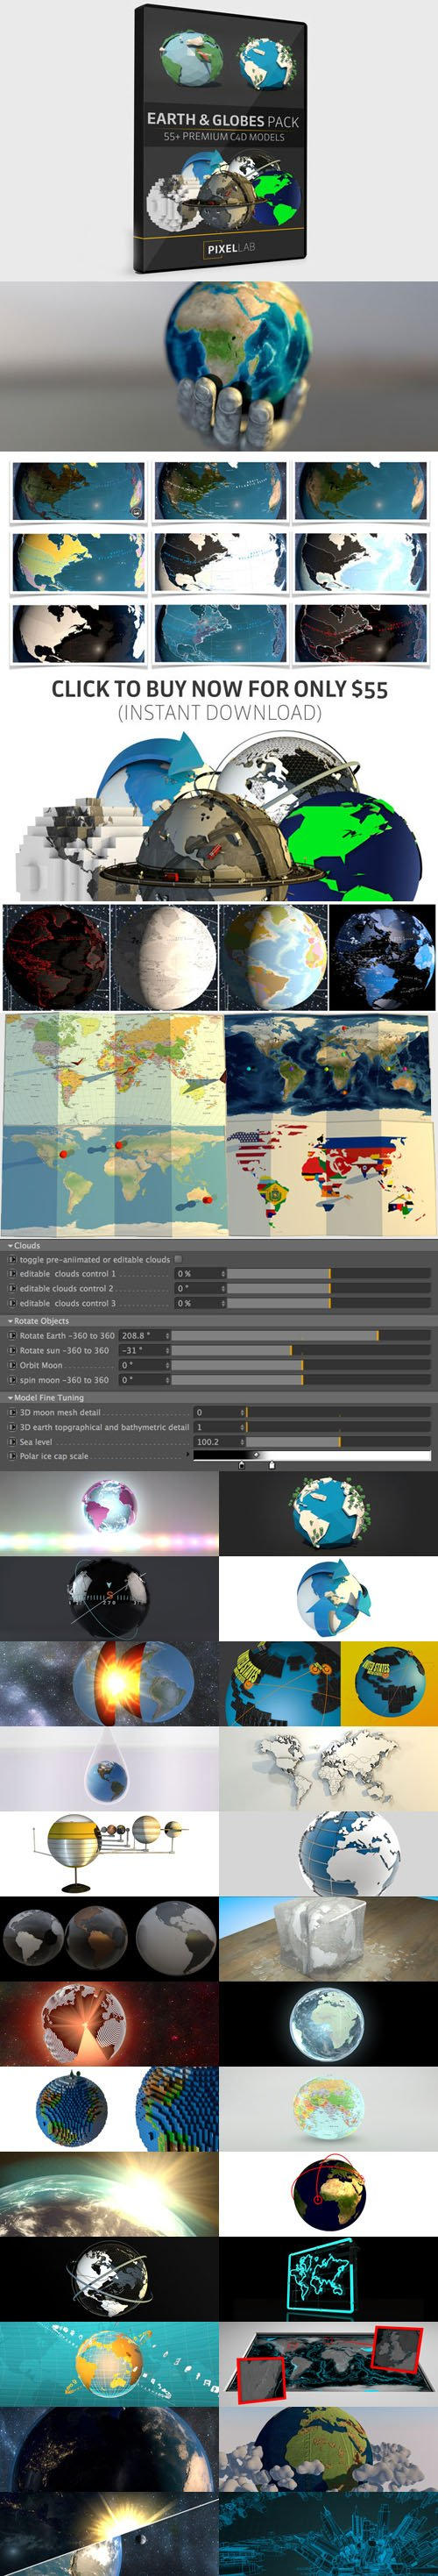 The Pixel Lab - 55 Earth and Globe C4D Models Pack